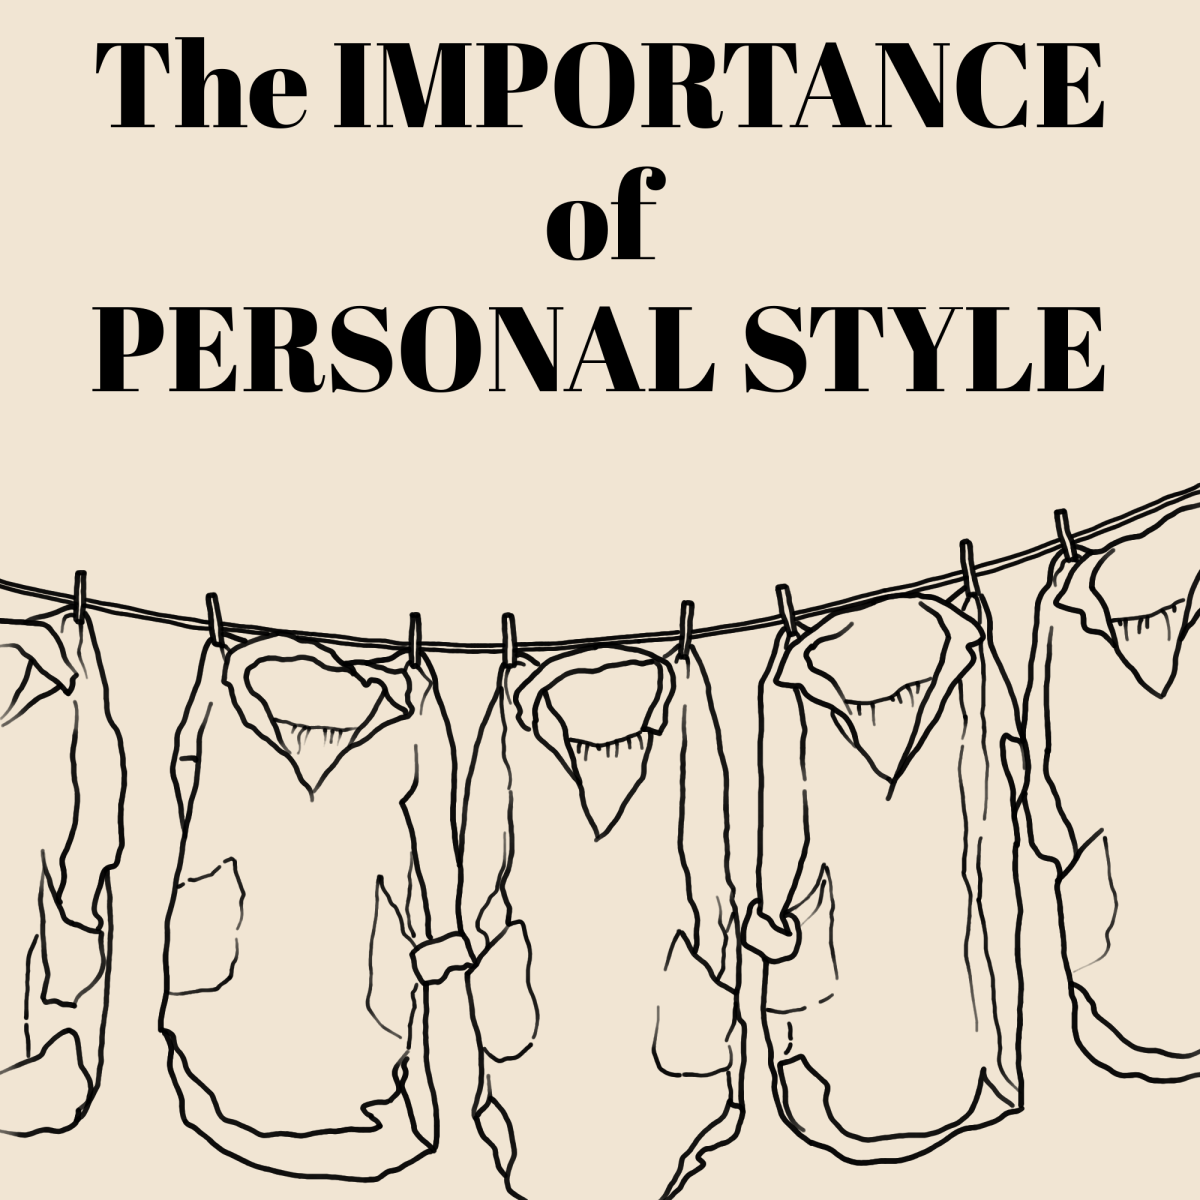 """A line art drawing of shirts hanging on a clothing line, with the text """"The Importance of Personal Style"""" above it"""